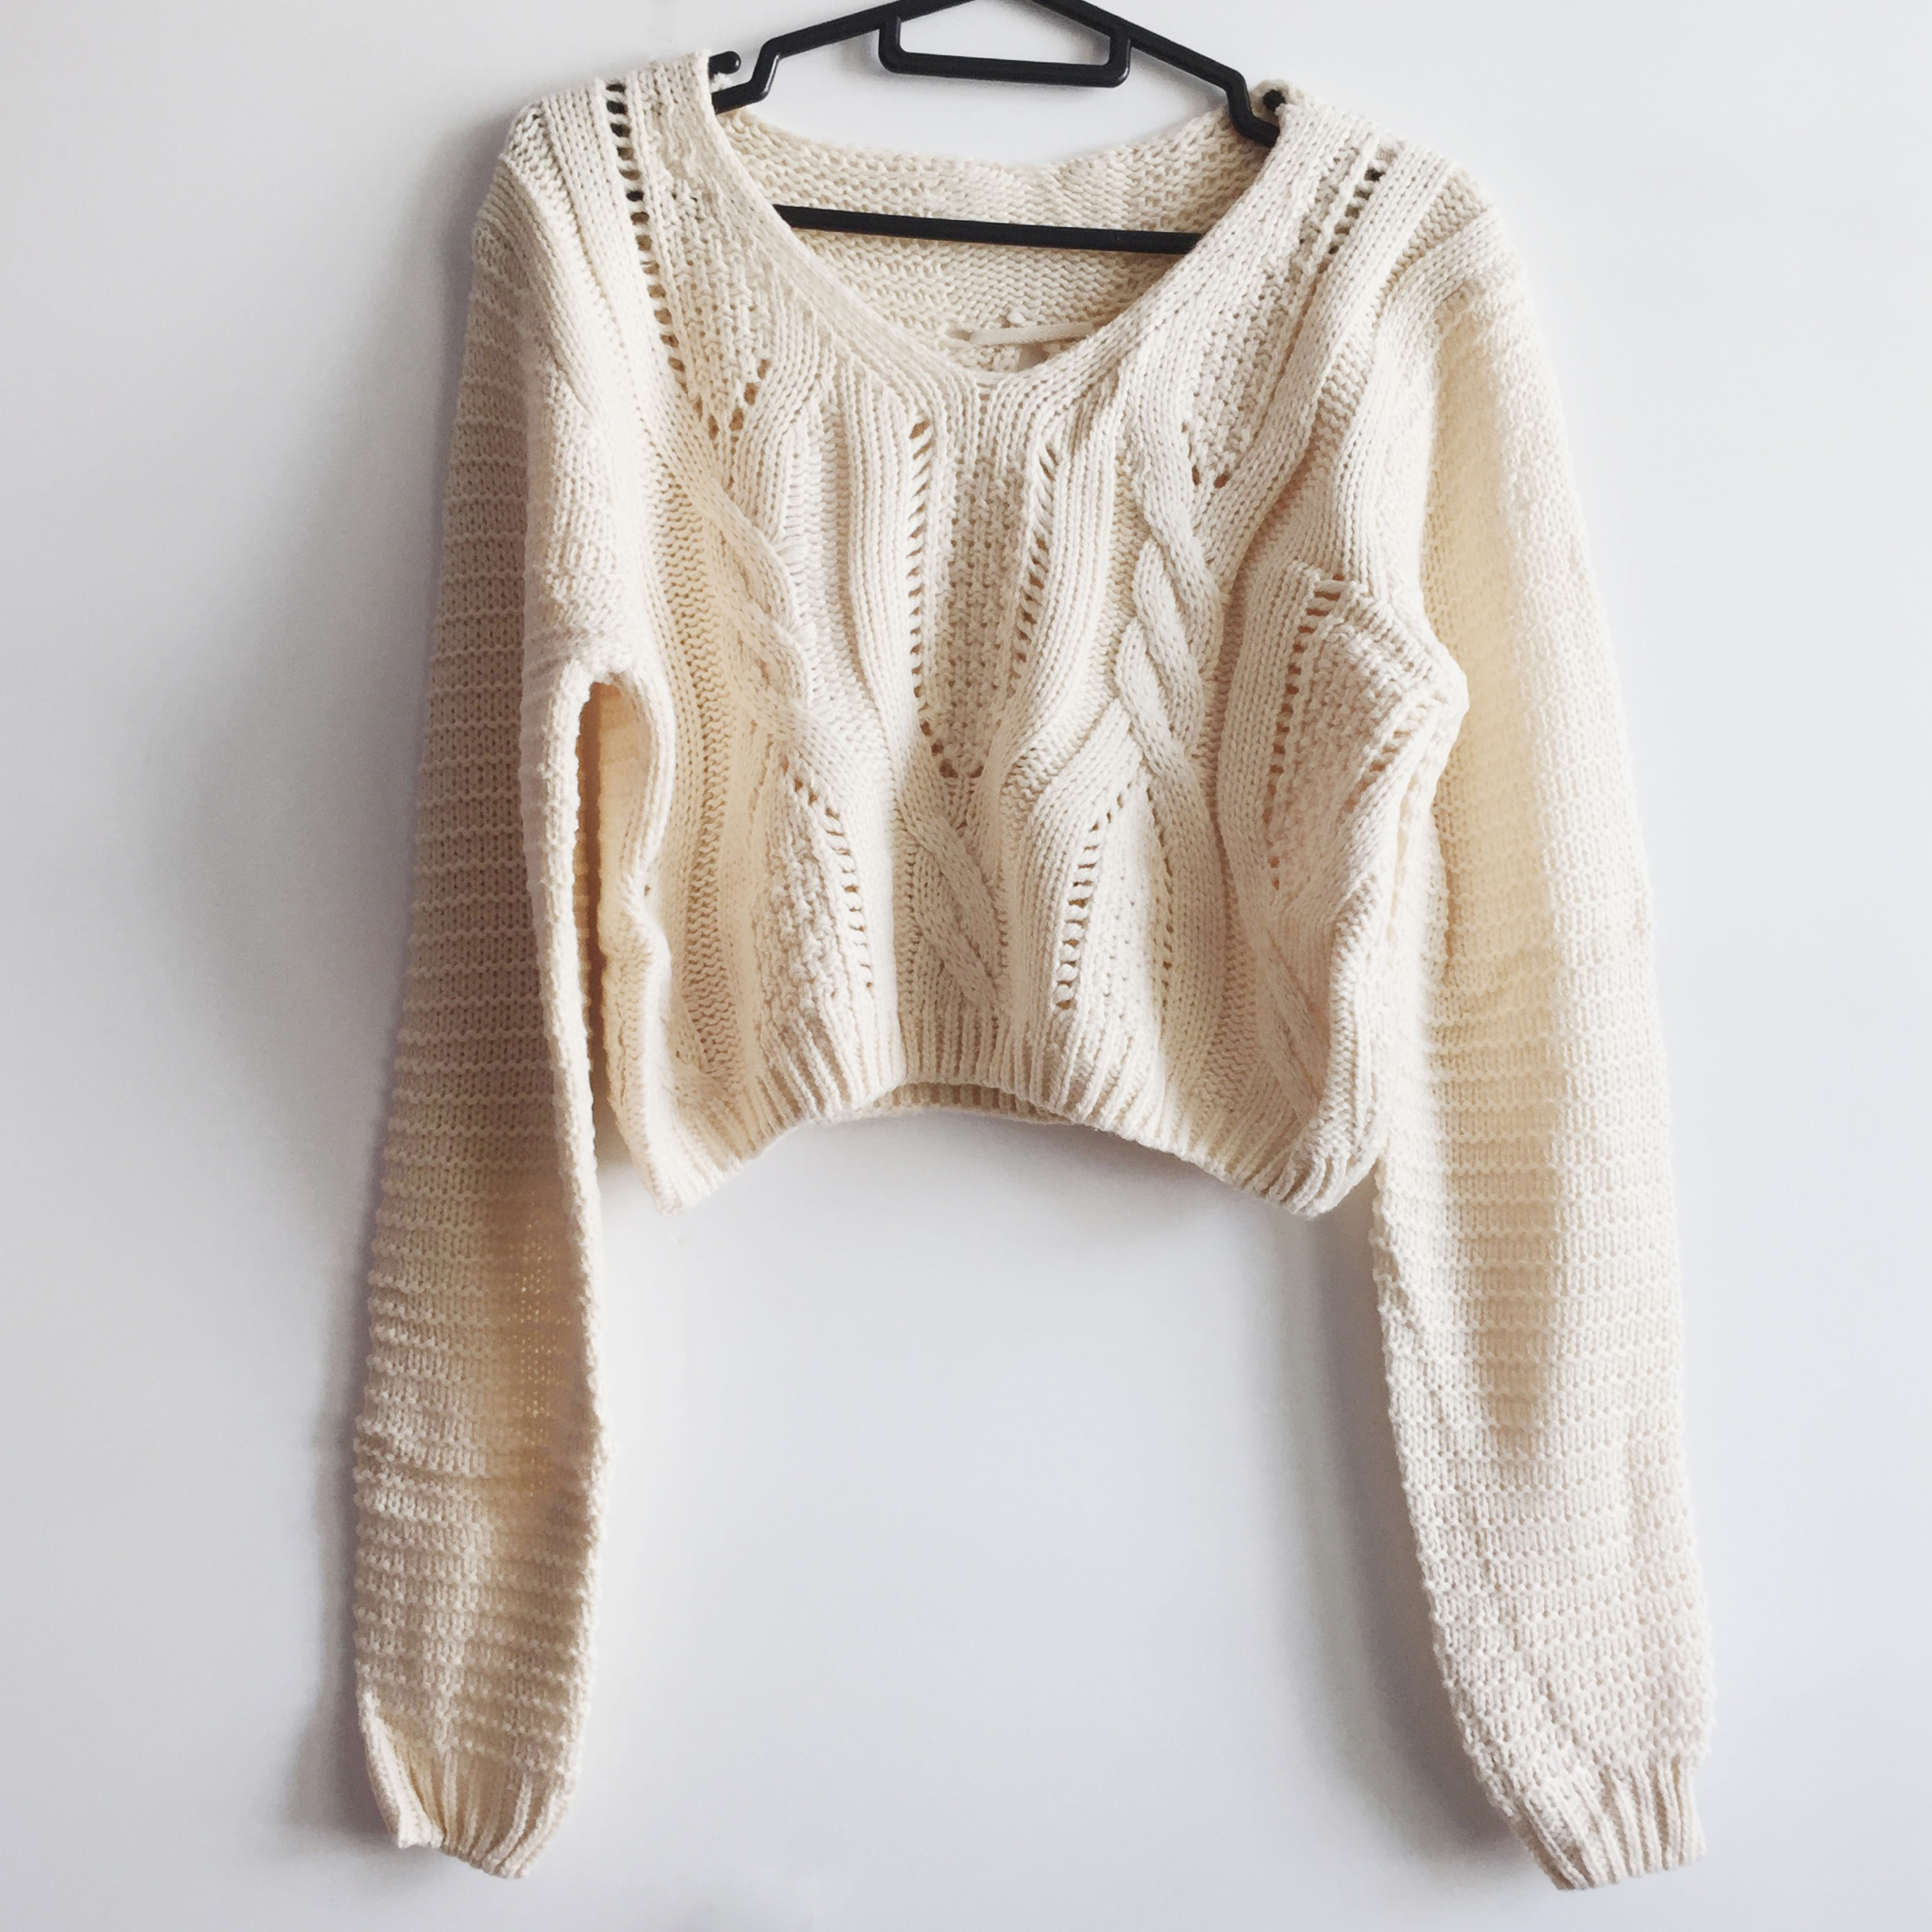 Lace Up Back Cropped Knit Sweater (Cream) · Megoosta Fashion ...